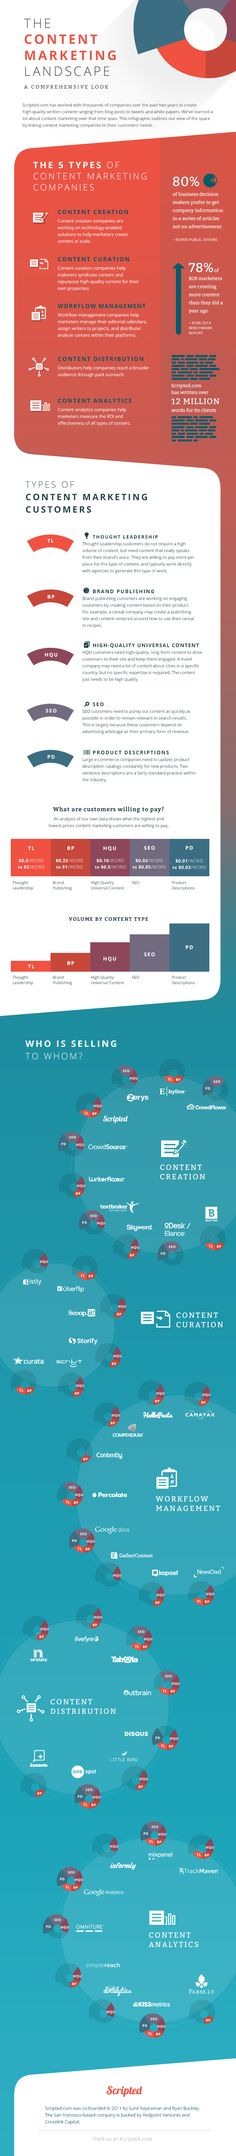 #ContentMarketing Landscape | A comprehensive viewCourtesy of: B2B #Infographics